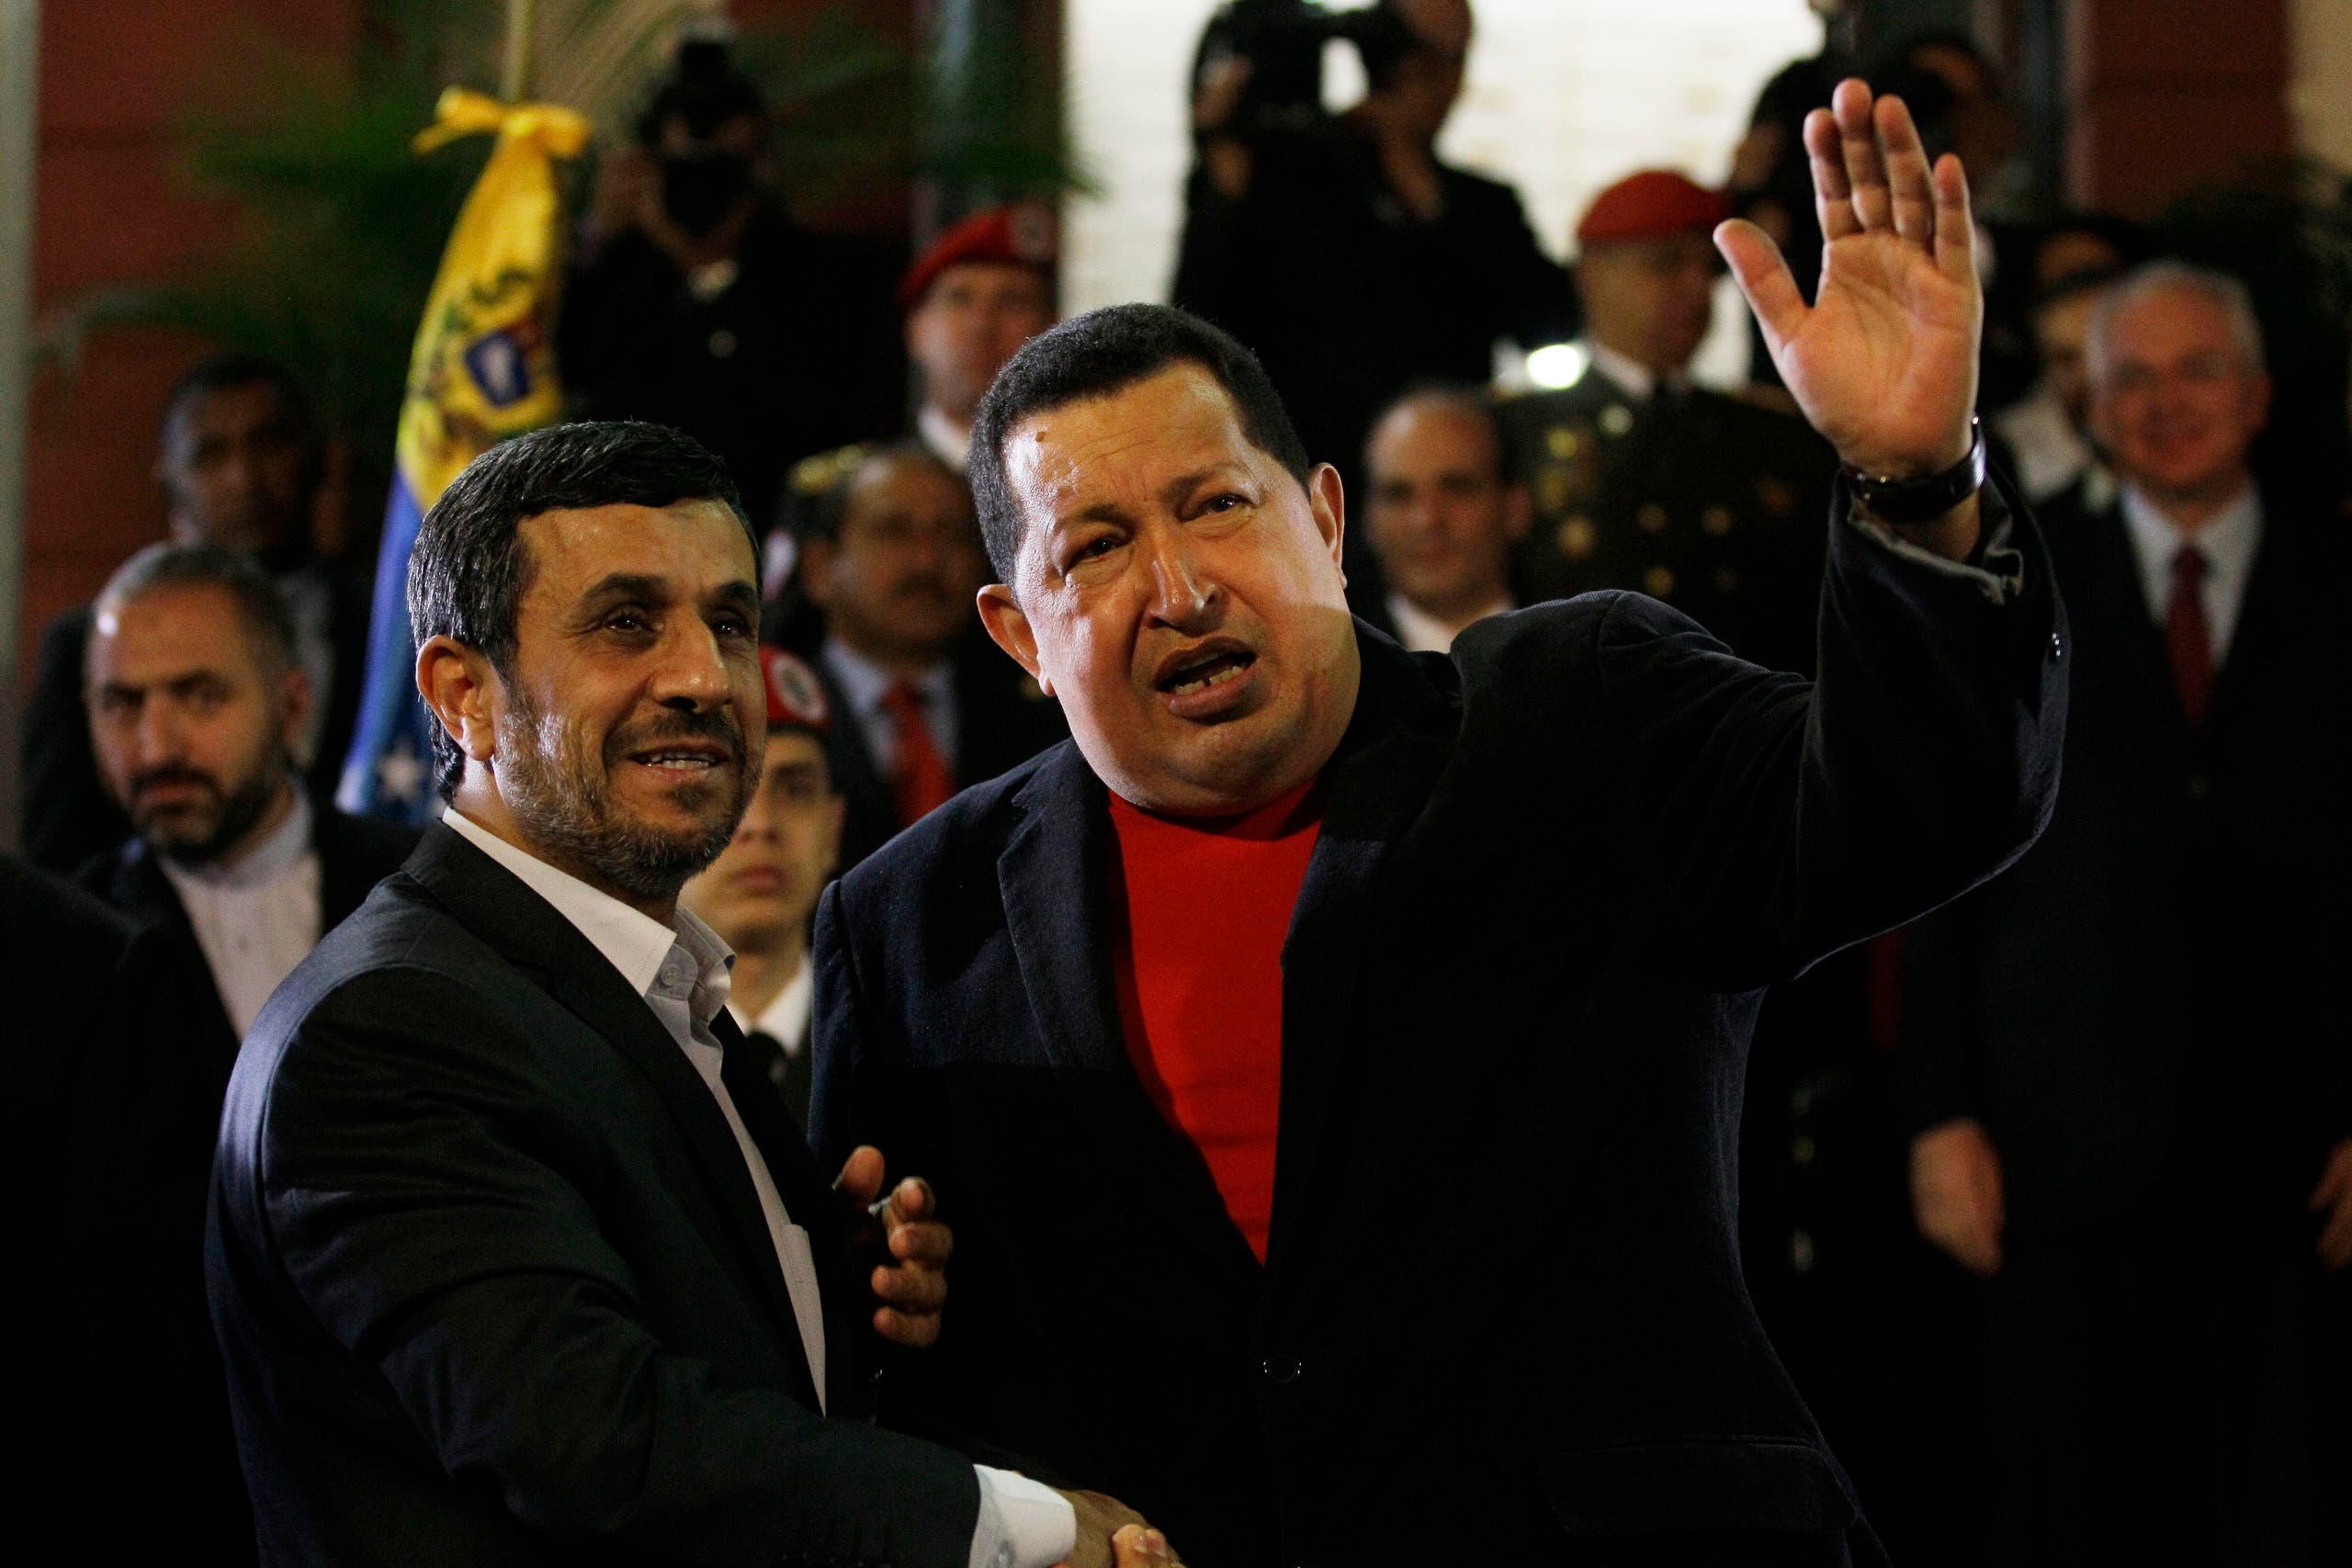 Iran's President Mahmoud Ahmadinejad, left, shakes hands with Venezuela's President Hugo Chavez as he arrives to Miraflores presidential palace in Caracas, Venezuela on June 22, 2012. (AP)